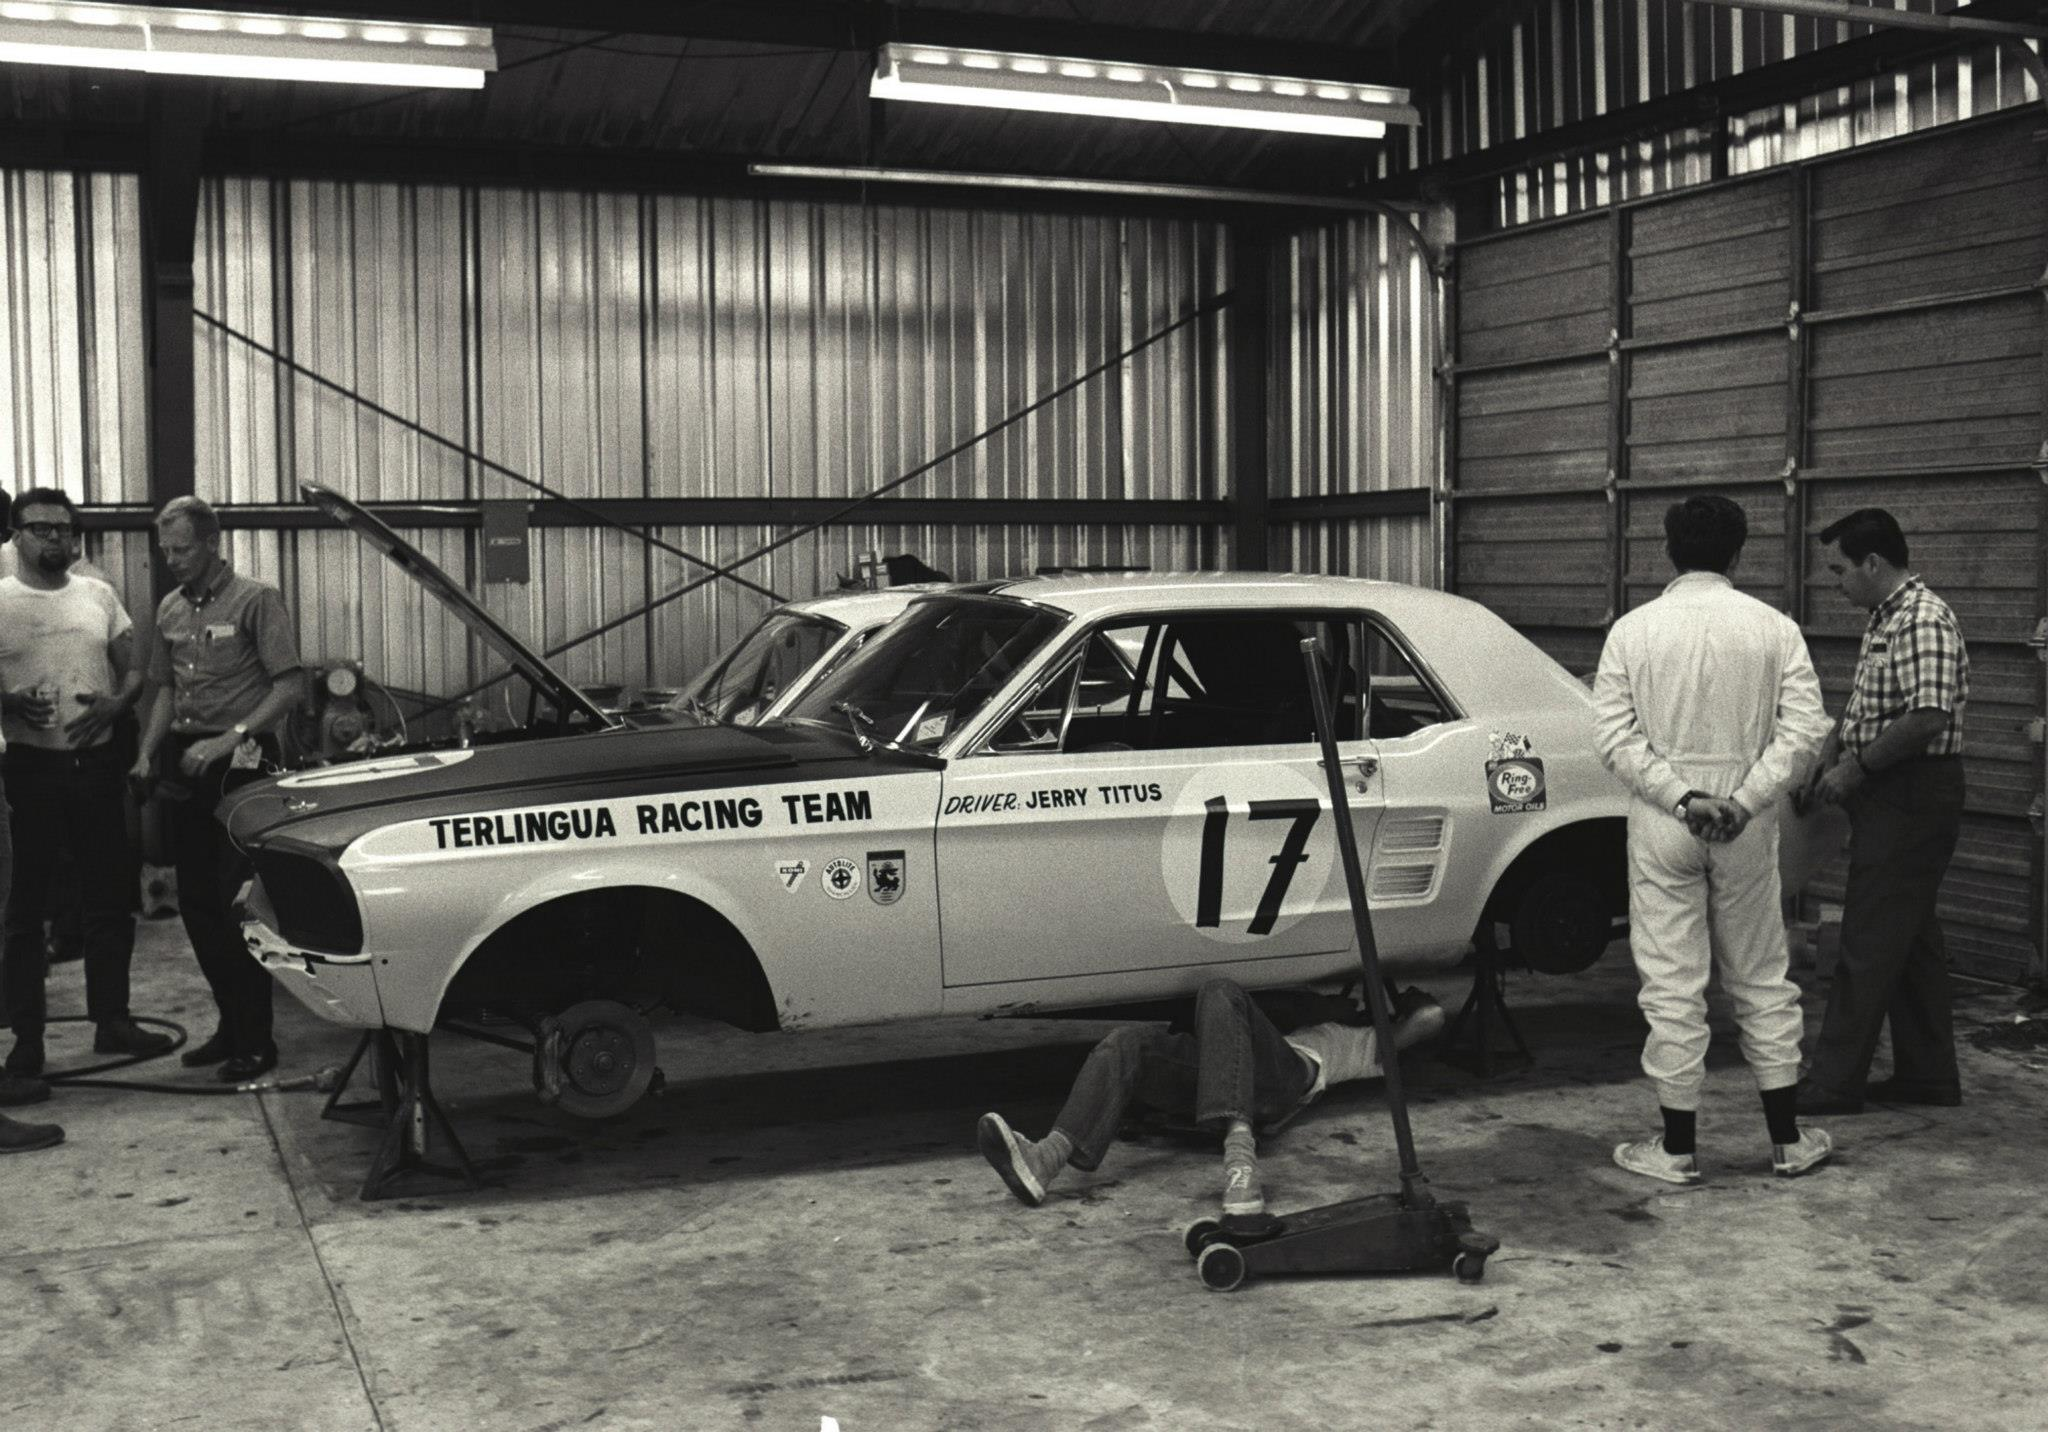 TERLINGUA RACING TEAM: 1967 Champions in SCCA Trans Am Series ...